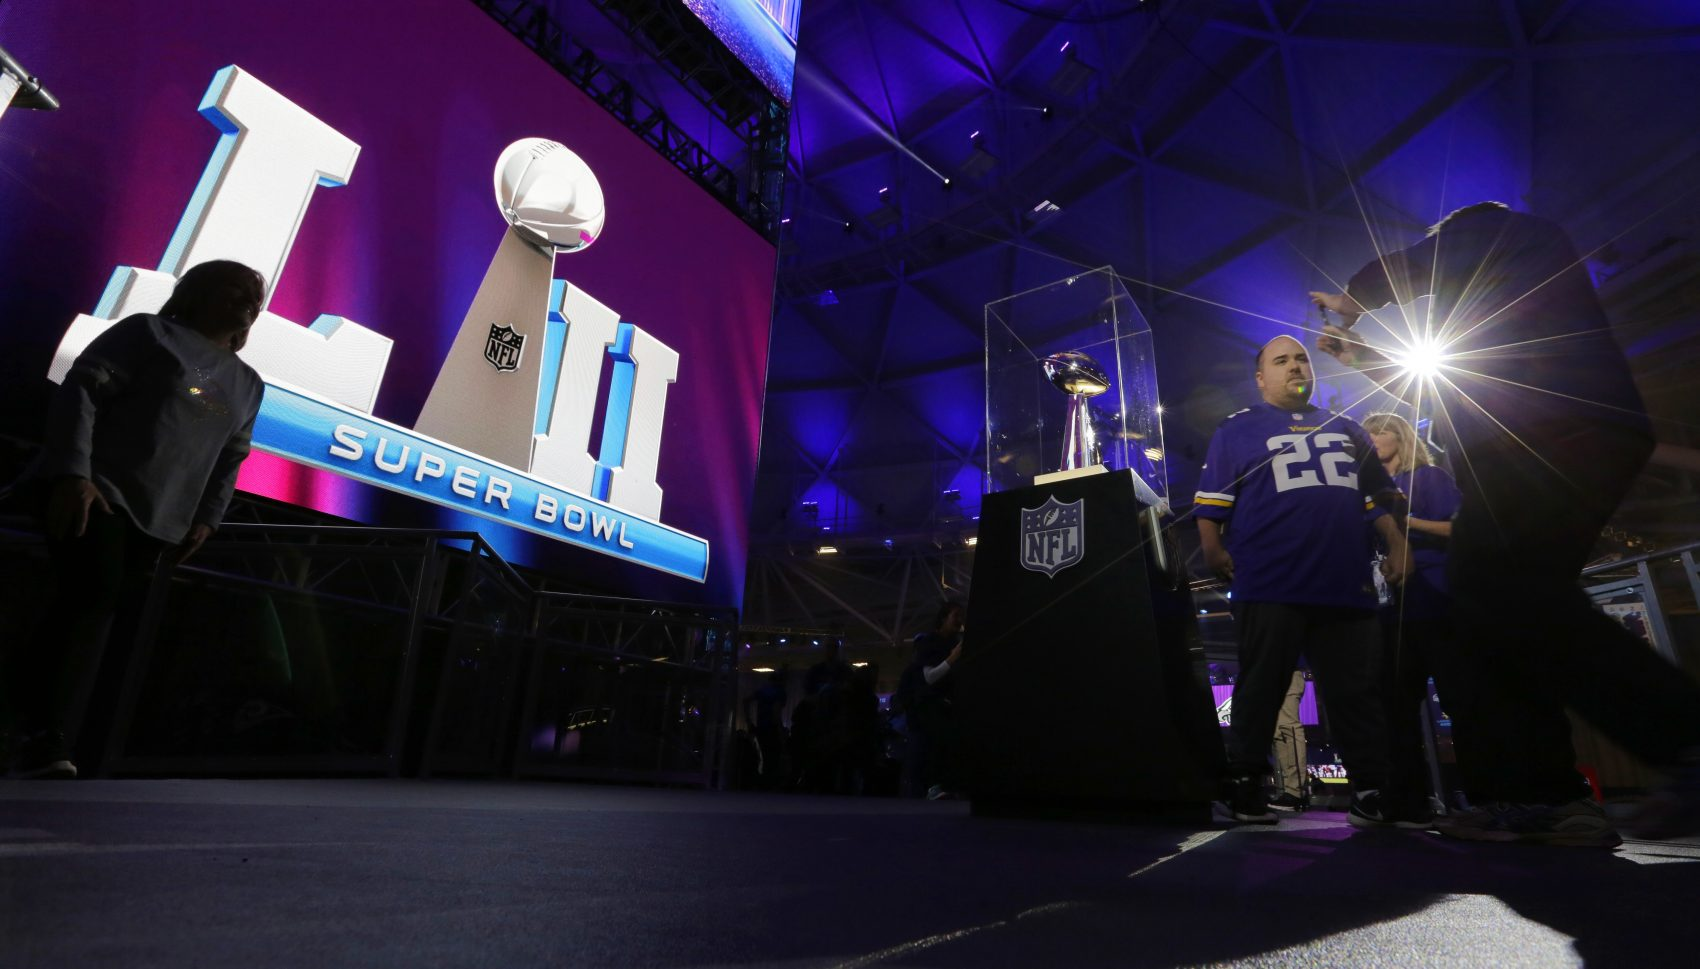 The Patriots are usually unpopular outside of New England -- but in the lead up to the Super Bowl, many Minnesotans are declaring their support for the Patriots. (Eric Gay/AP)